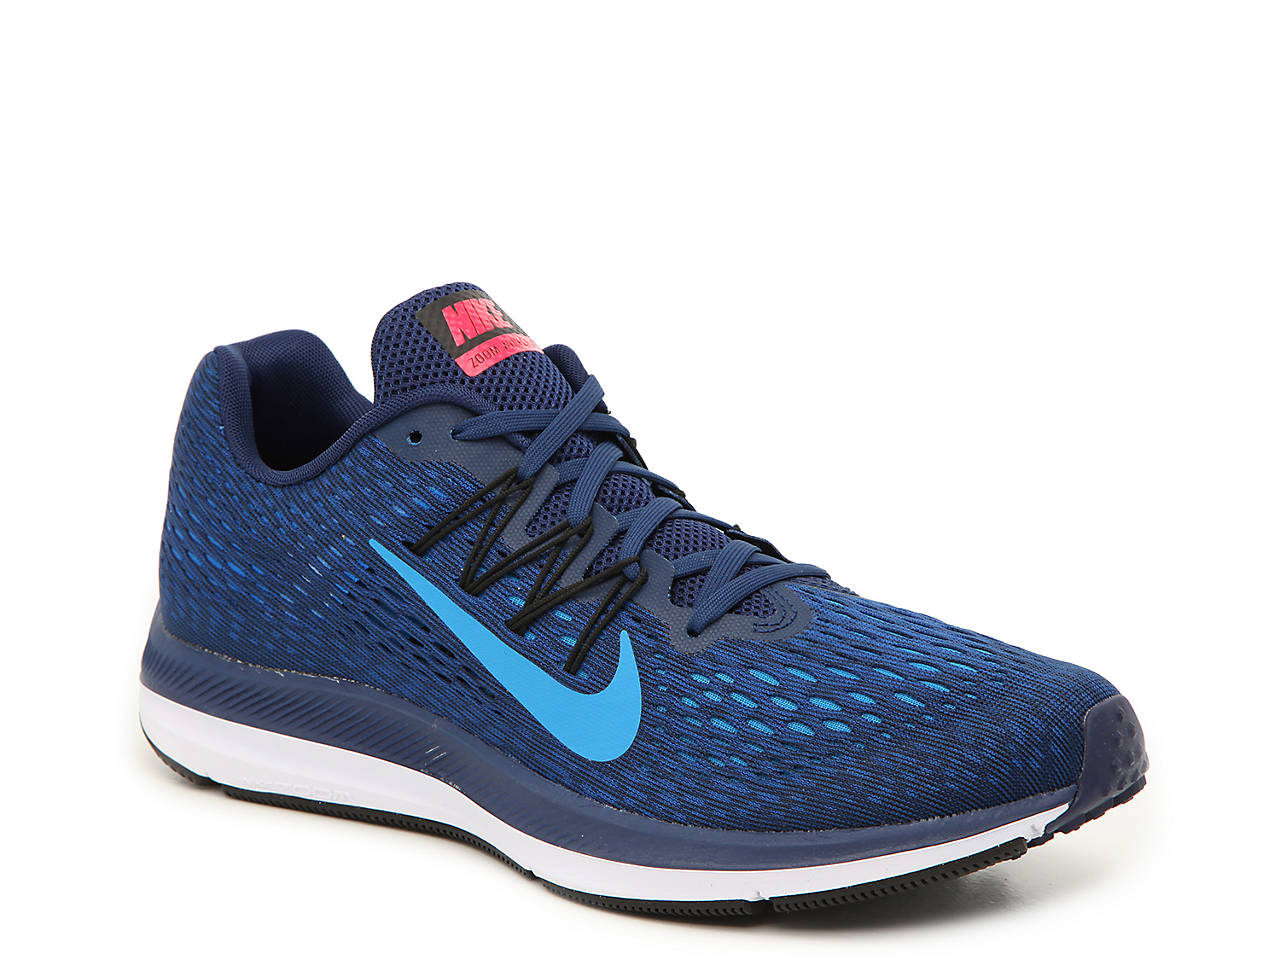 b7aa7a2c95fbf Nike Zoom Winflo 5 Lightweight Running Shoe - Men s Men s Shoes